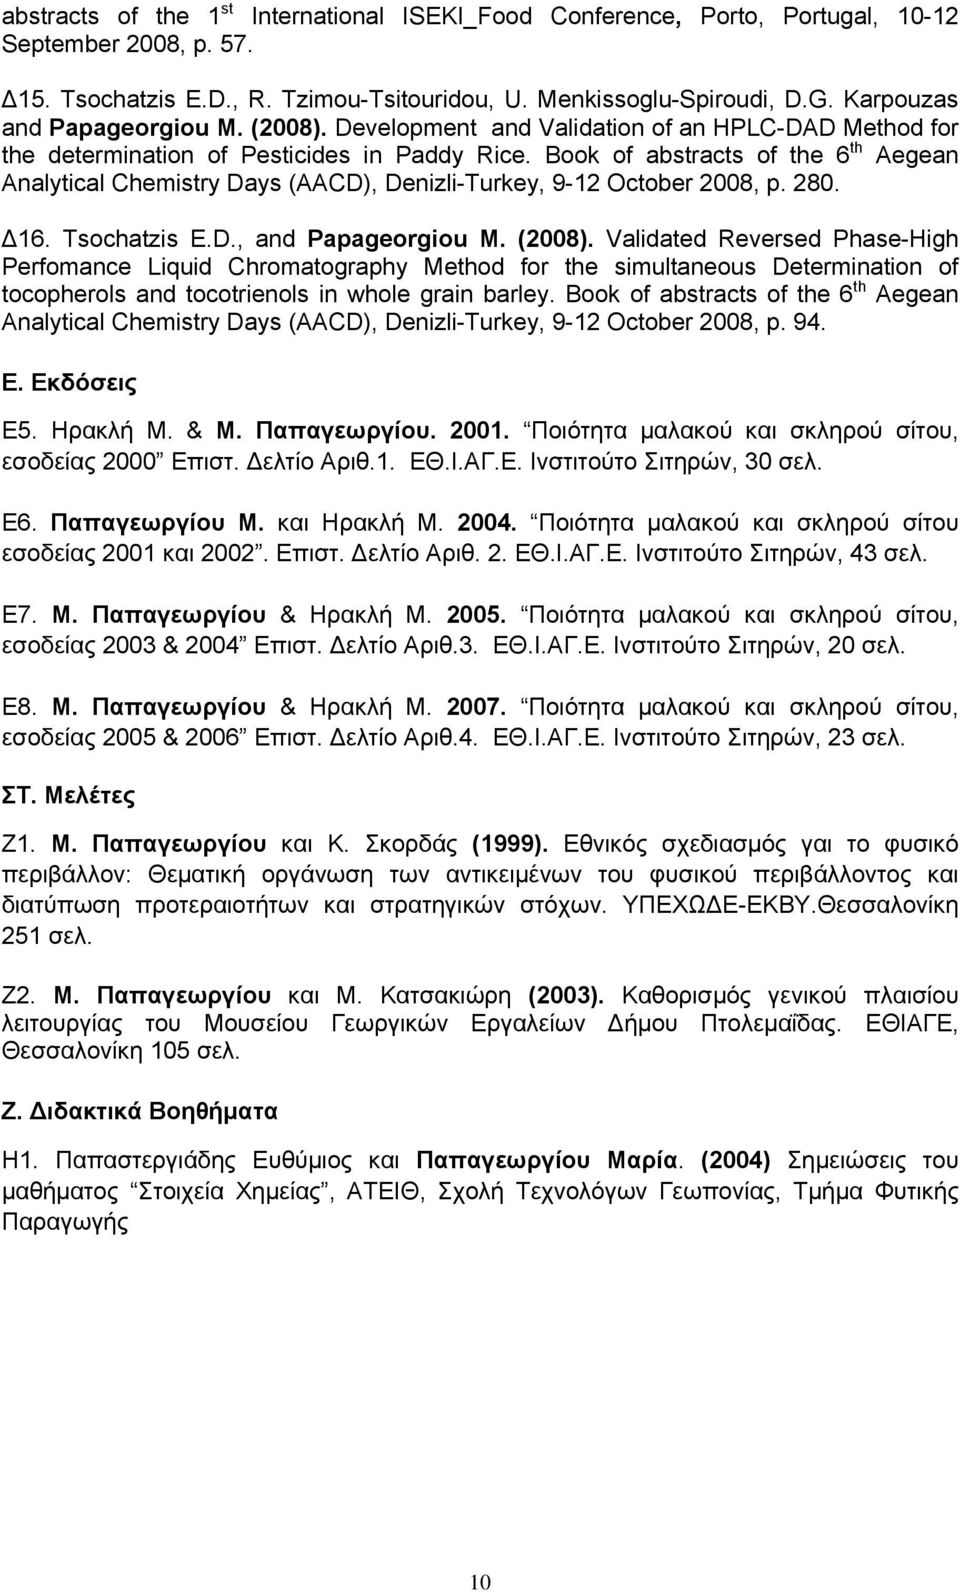 Book of abstracts of the 6 th Aegean Analytical Chemistry Days (AACD), Denizli-Turkey, 9-12 October 2008, p. 280. 16. Tsochatzis E.D., and Papageorgiou M. (2008).